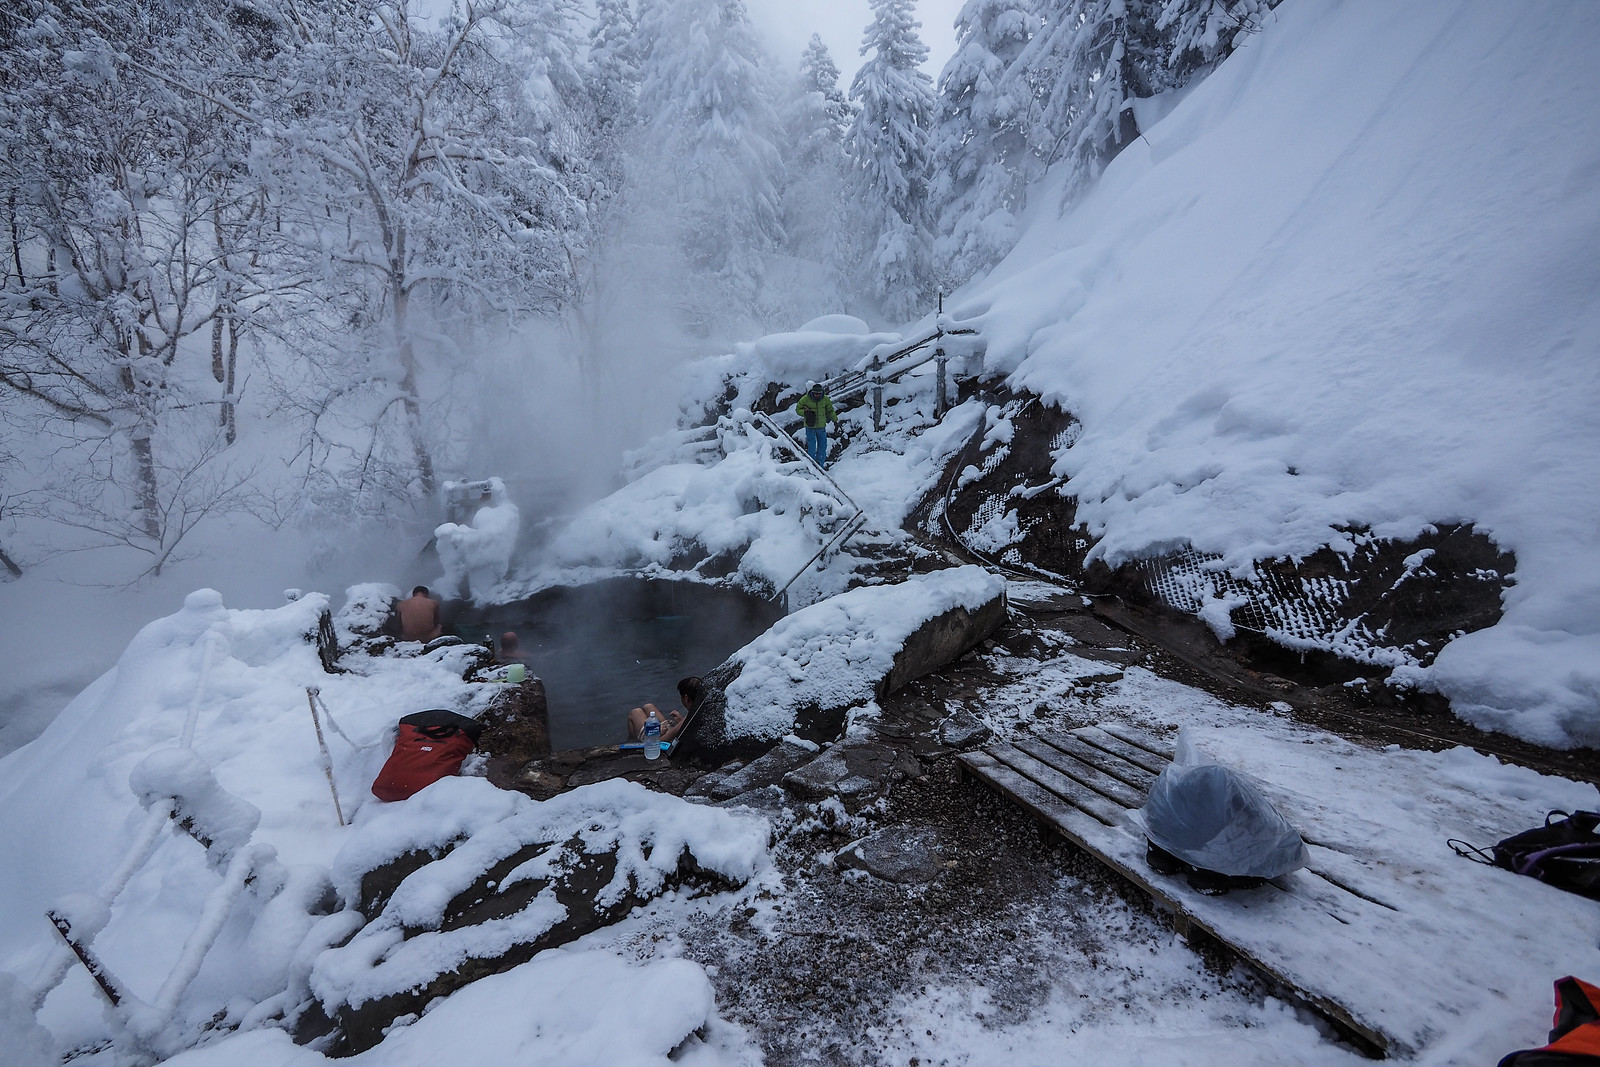 Fukiage natural free onsen in the Tokachi mountain range (Hokkaido, Japan)